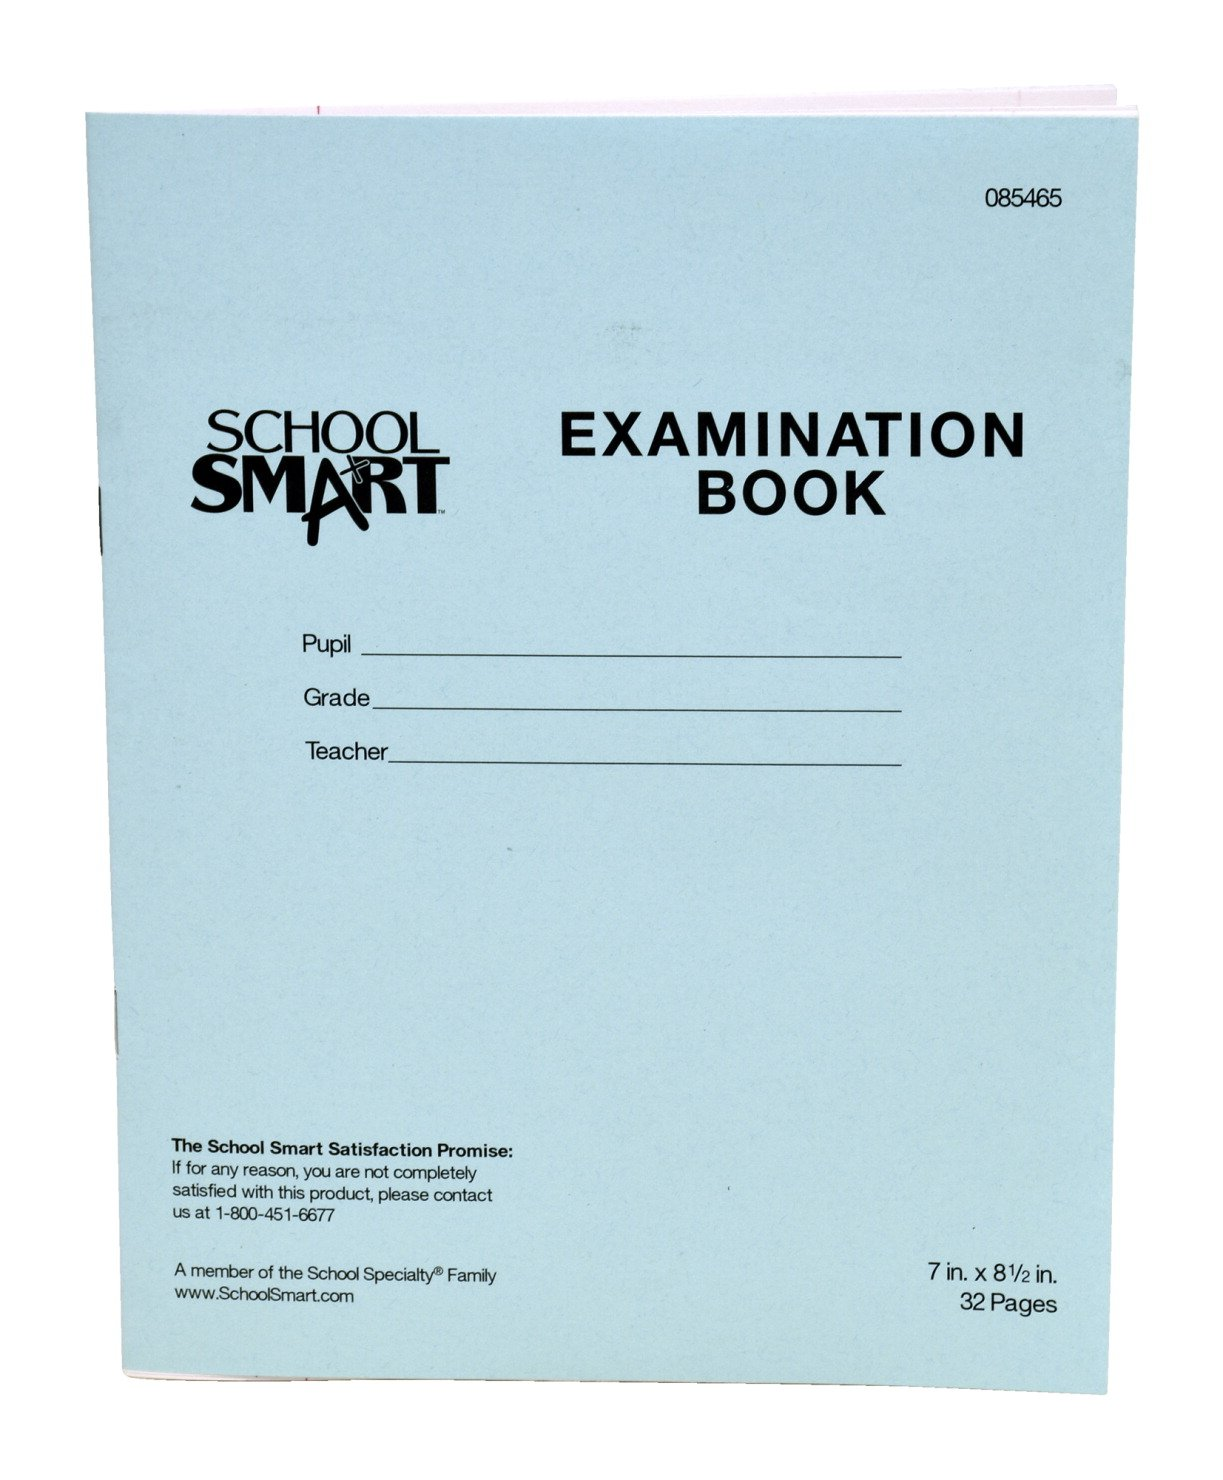 School Smart Ruled Examination Blue Books with Margin - 7 in x 8 1/2 in - Pack of 50, 32 Page Books